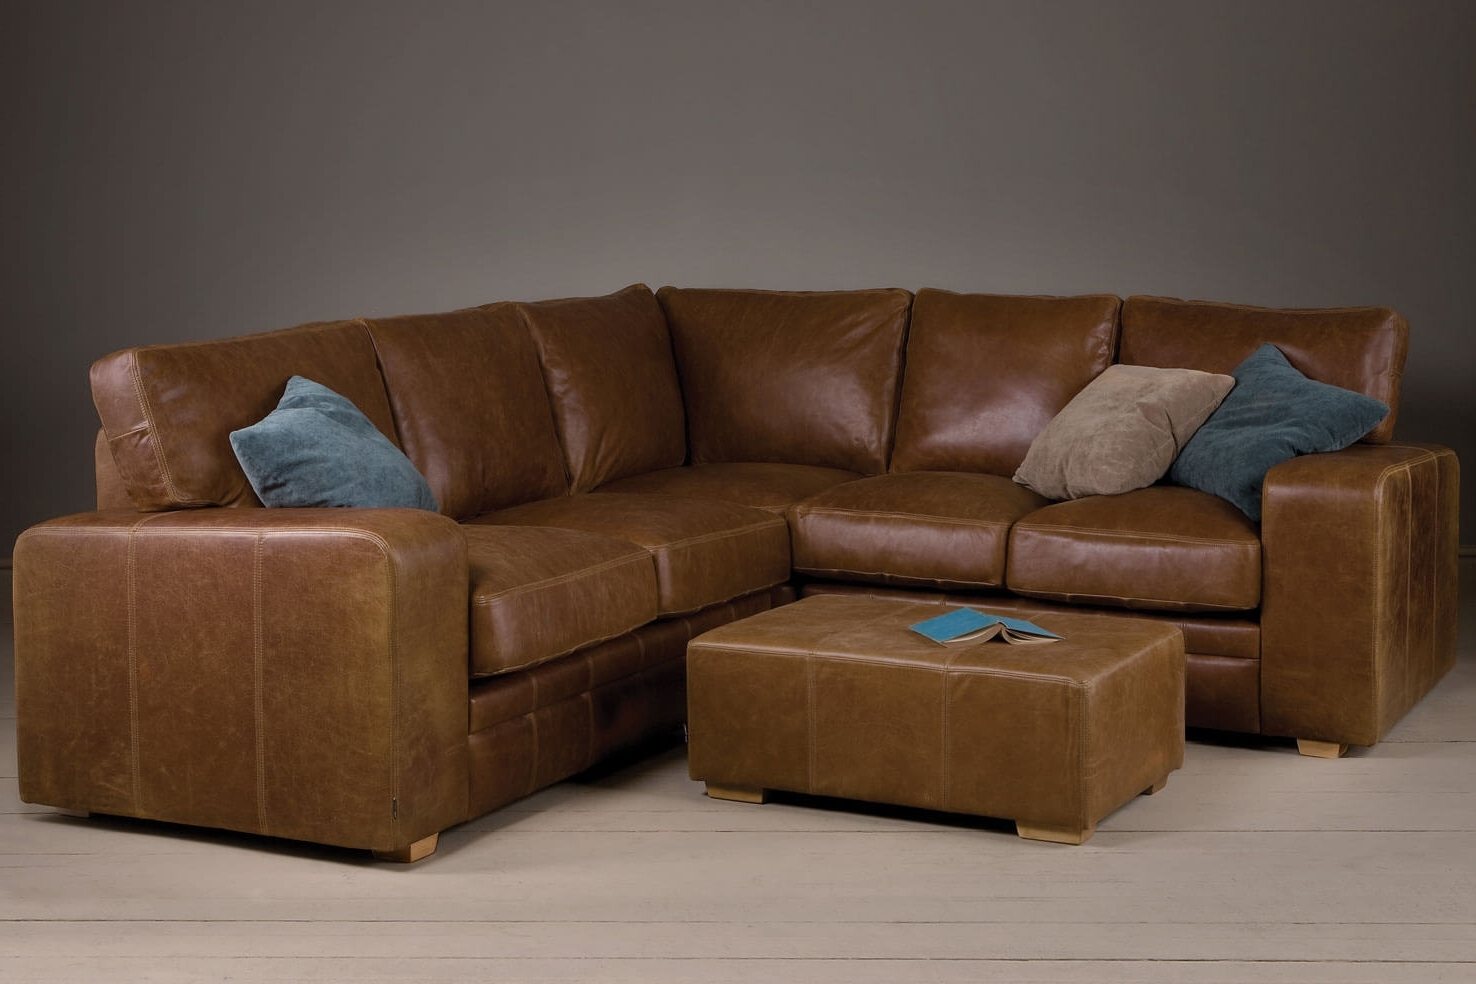 Most Recent Leather Corner Sofas Throughout Corner Sofas Handmade In Brown Leather & Fabrics (View 19 of 20)